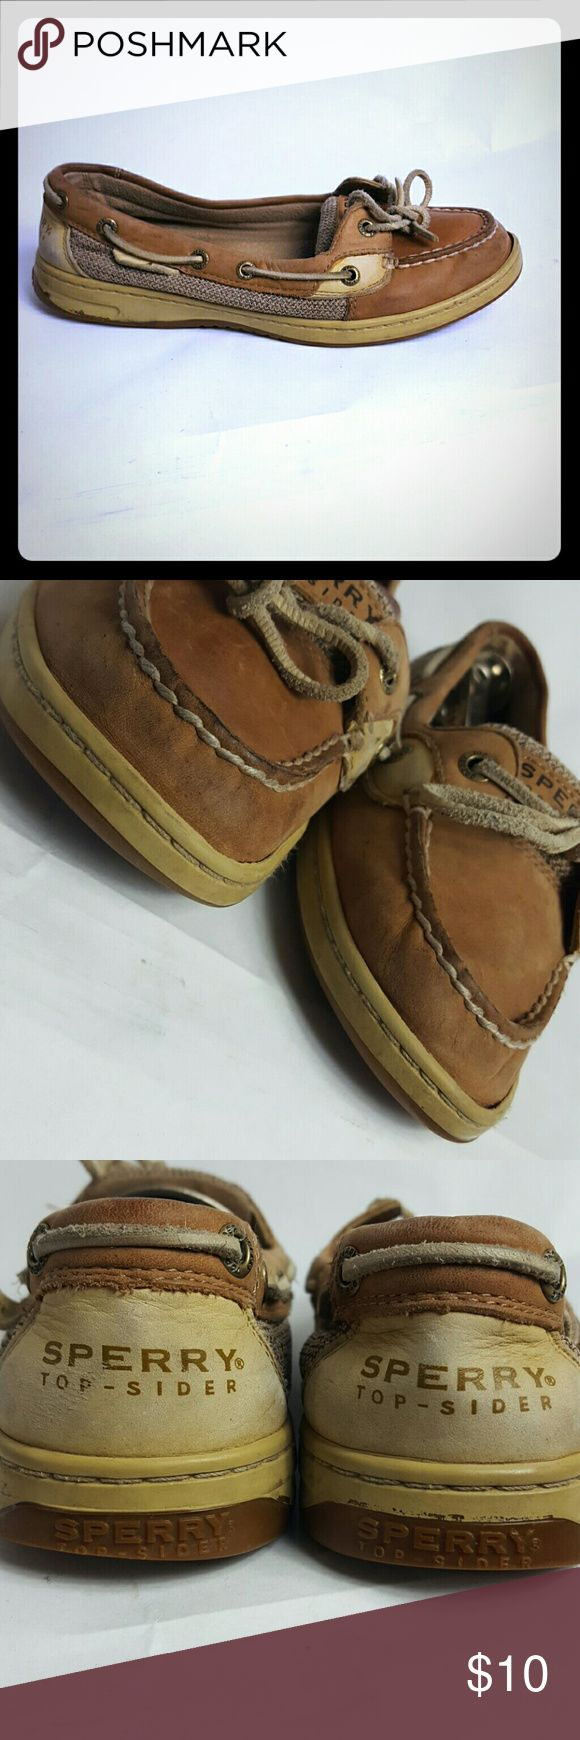 ??CLEARANCE ??Sperry Top Sider Women's size 8M Condition 7/10, scuffs and small water stains on both shoes, size 8M, they have been loved, but there is still juice in them. I will price them accordingly the flaws. If you have any questions or you want to request more pictures, don't hesitate to ask m Sperry Top-Sider Shoes Flats & Loafers